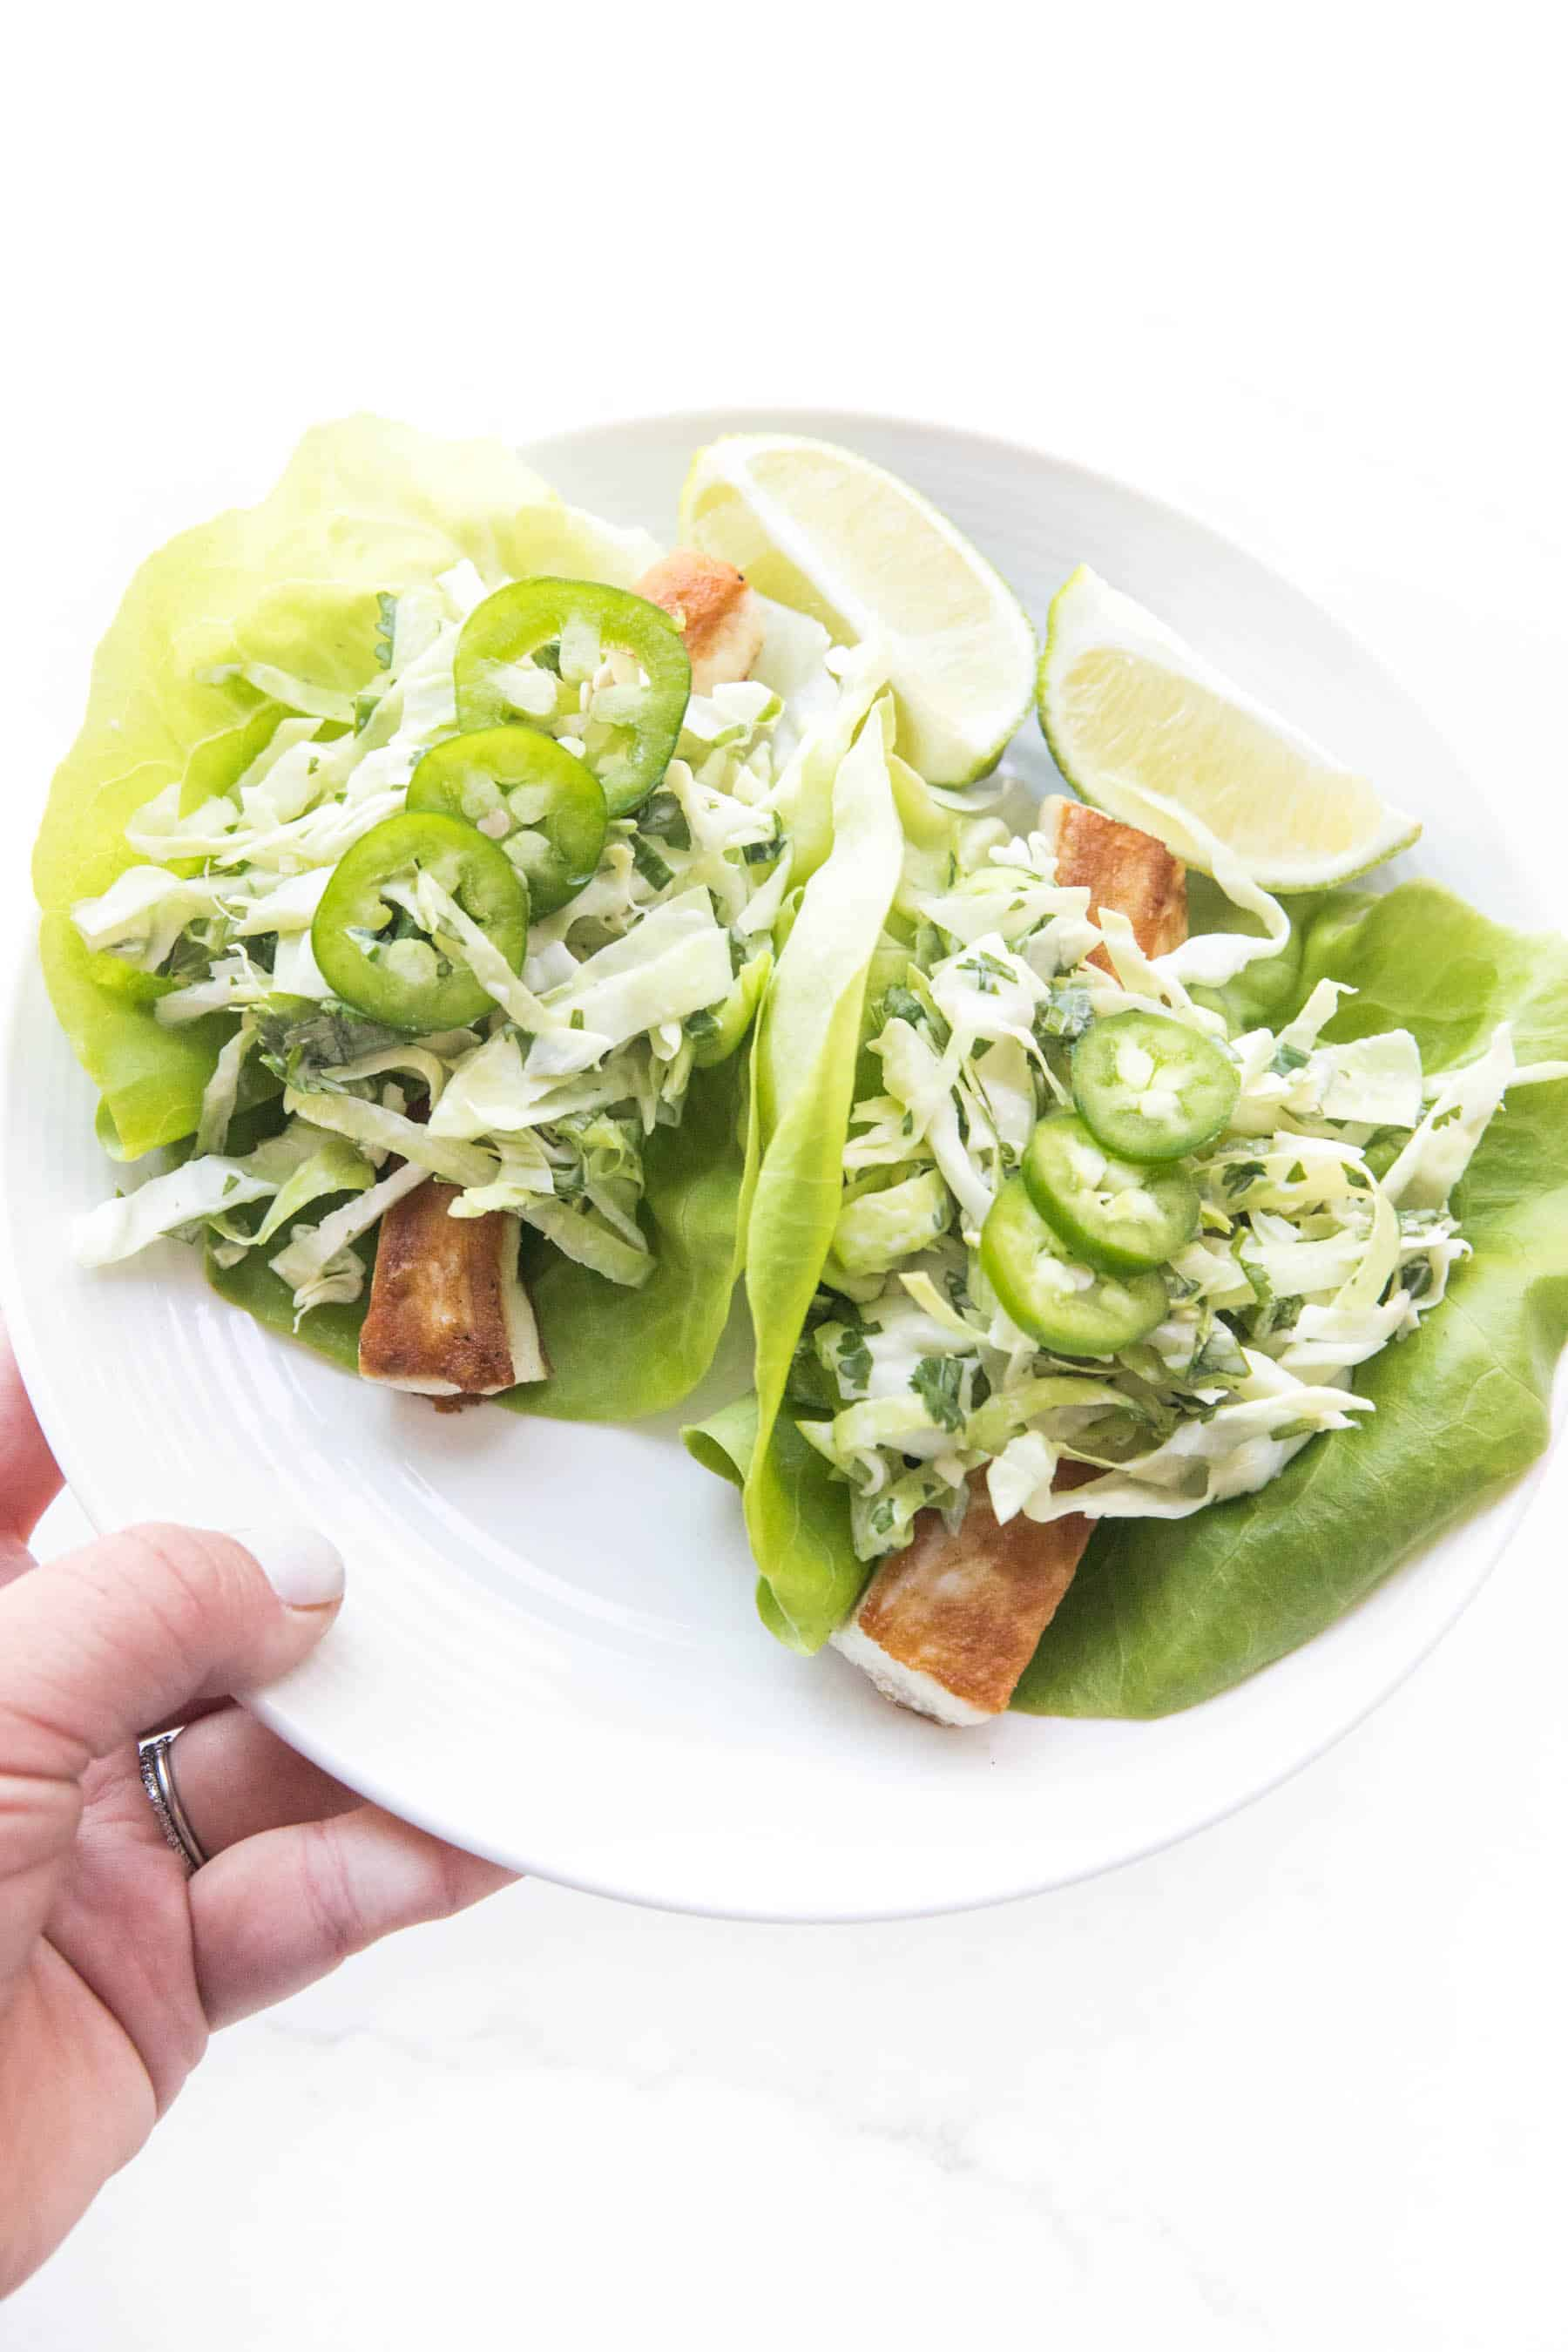 hand holding fish tacos on a lettuce taco shell topped with coleslaw on a white background